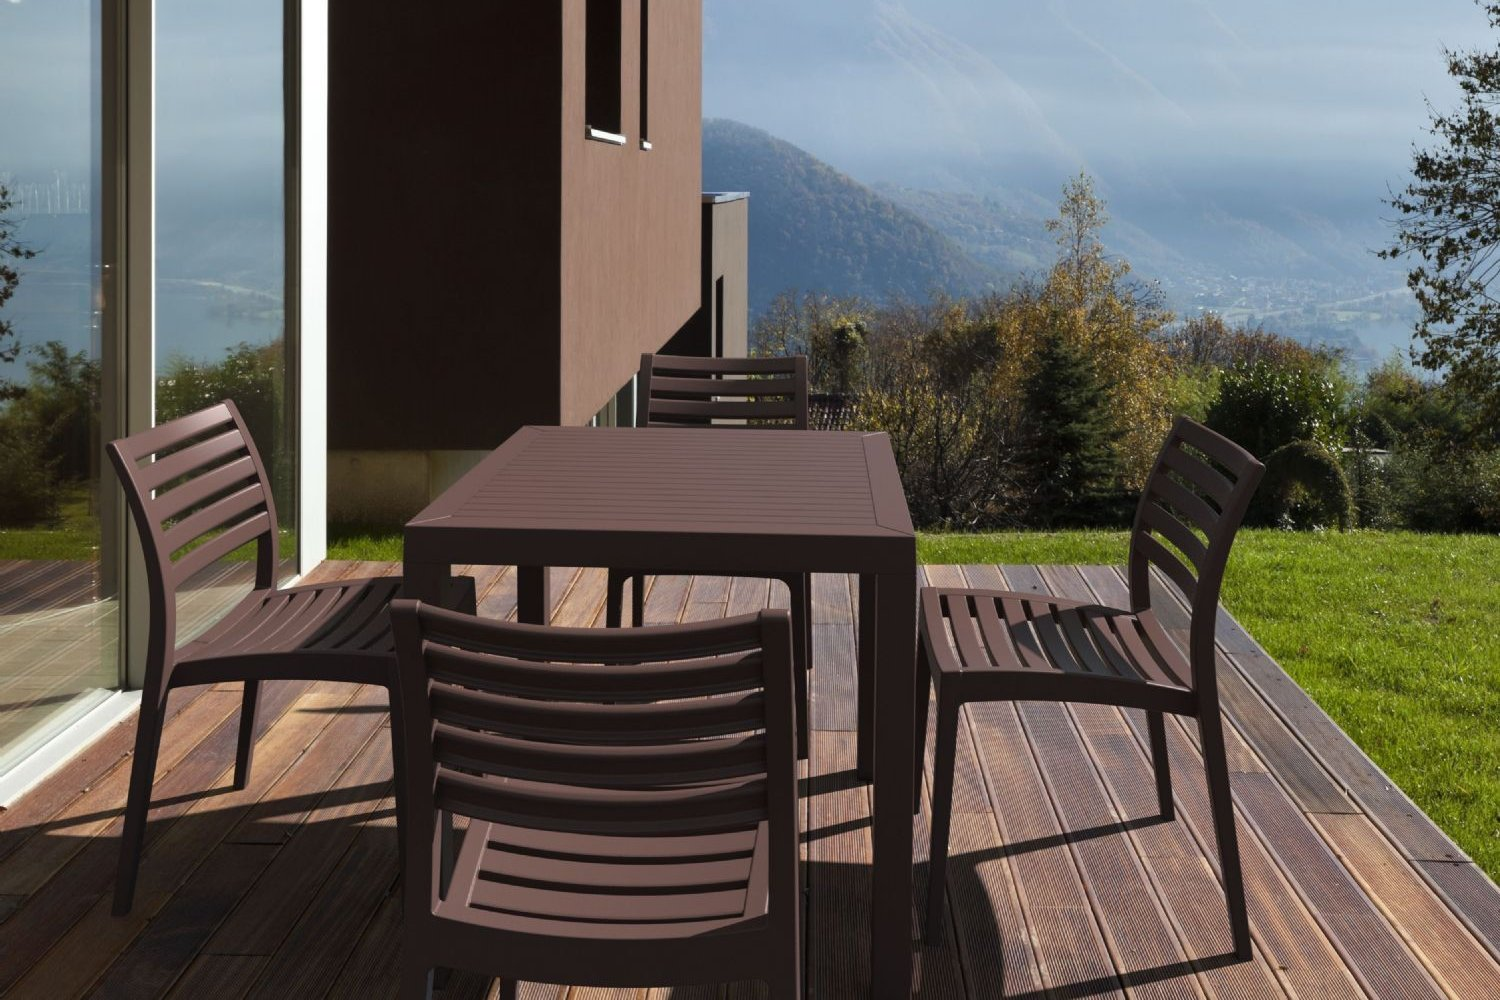 Ares Resin Square Outdoor Dining Set 5 Piece with Side Chairs Brown ISP1641S-BRW - 3